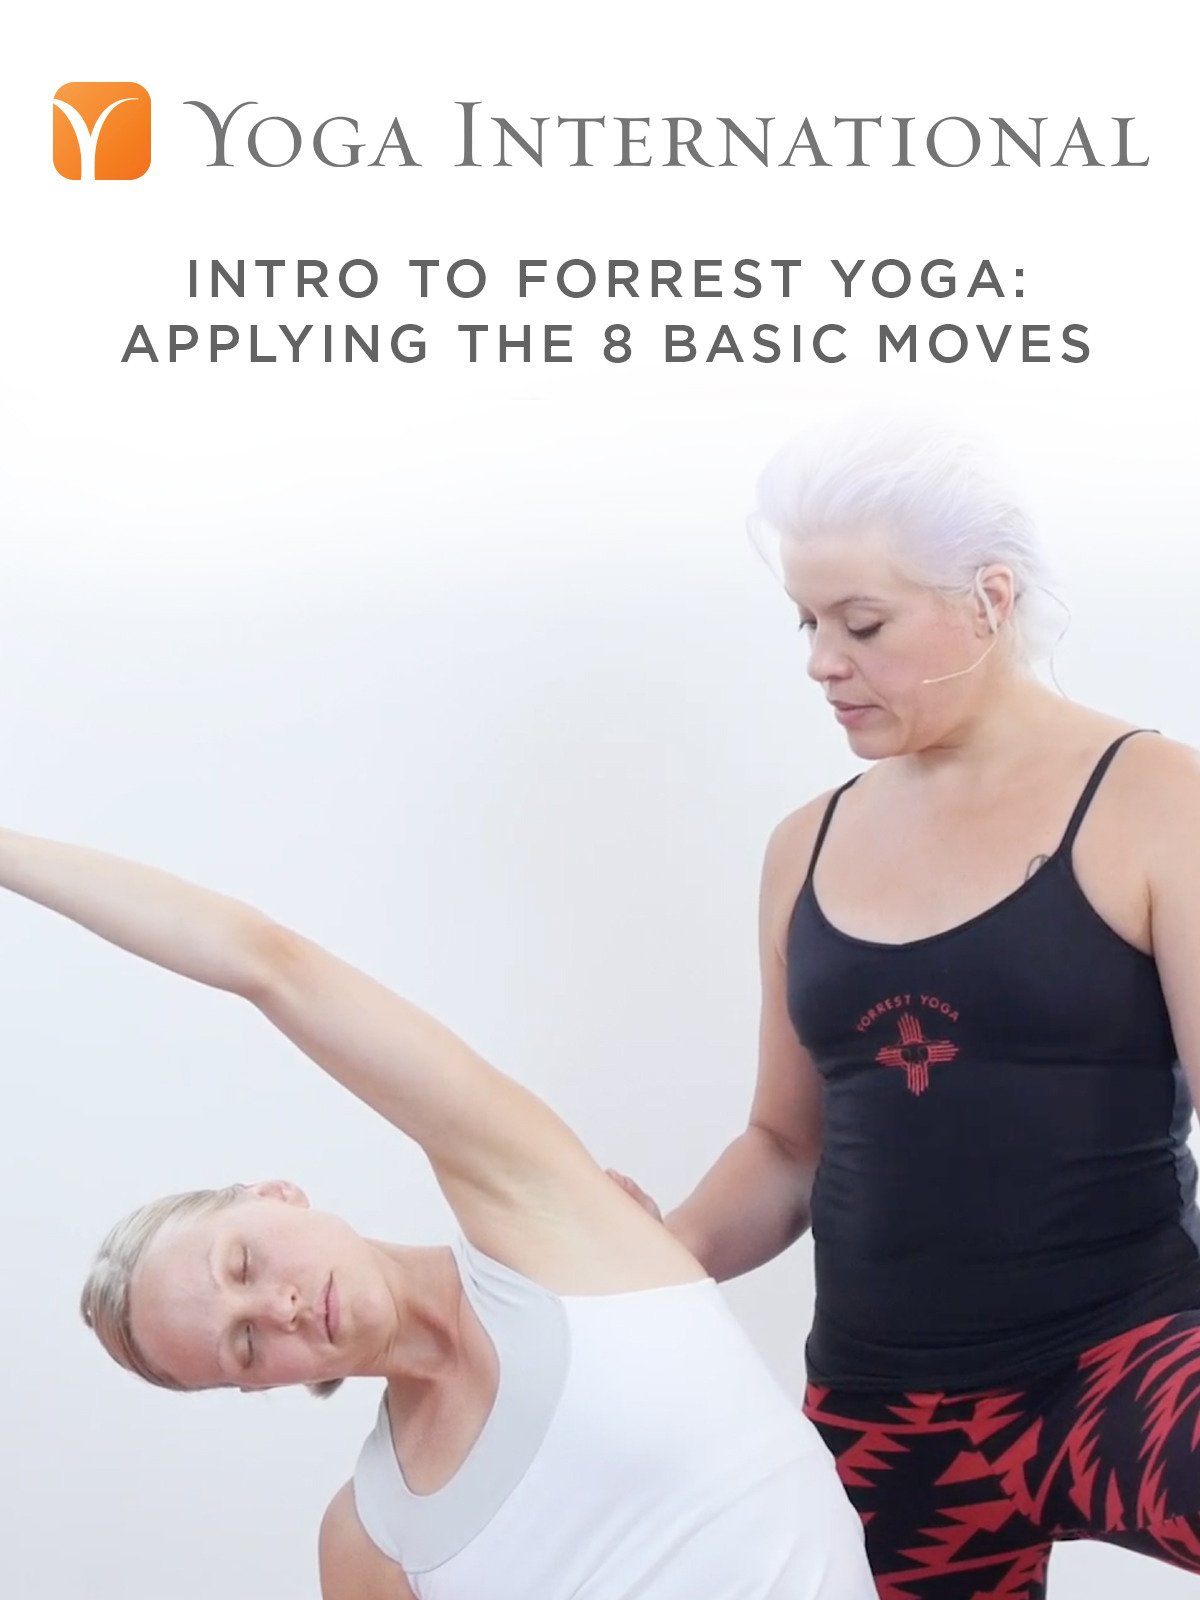 Intro to Forrest Yoga: Applying the 8 Basic Moves